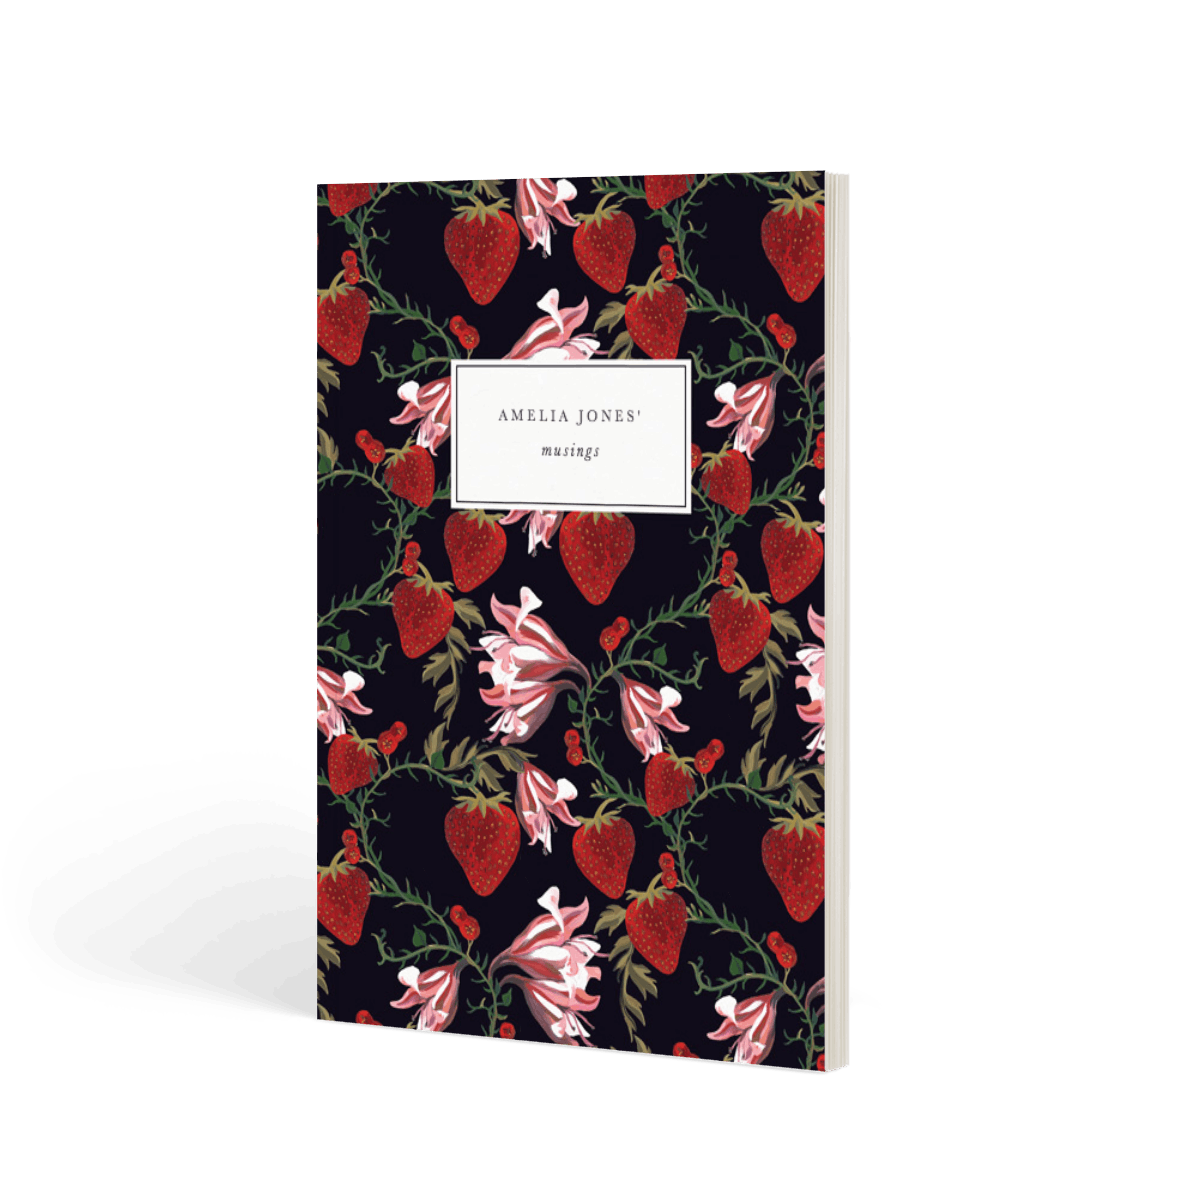 Https%3a%2f%2fwww.papier.com%2fproduct image%2f45307%2f6%2fstrawberry floral 11239 front 1539706588.png?ixlib=rb 1.1